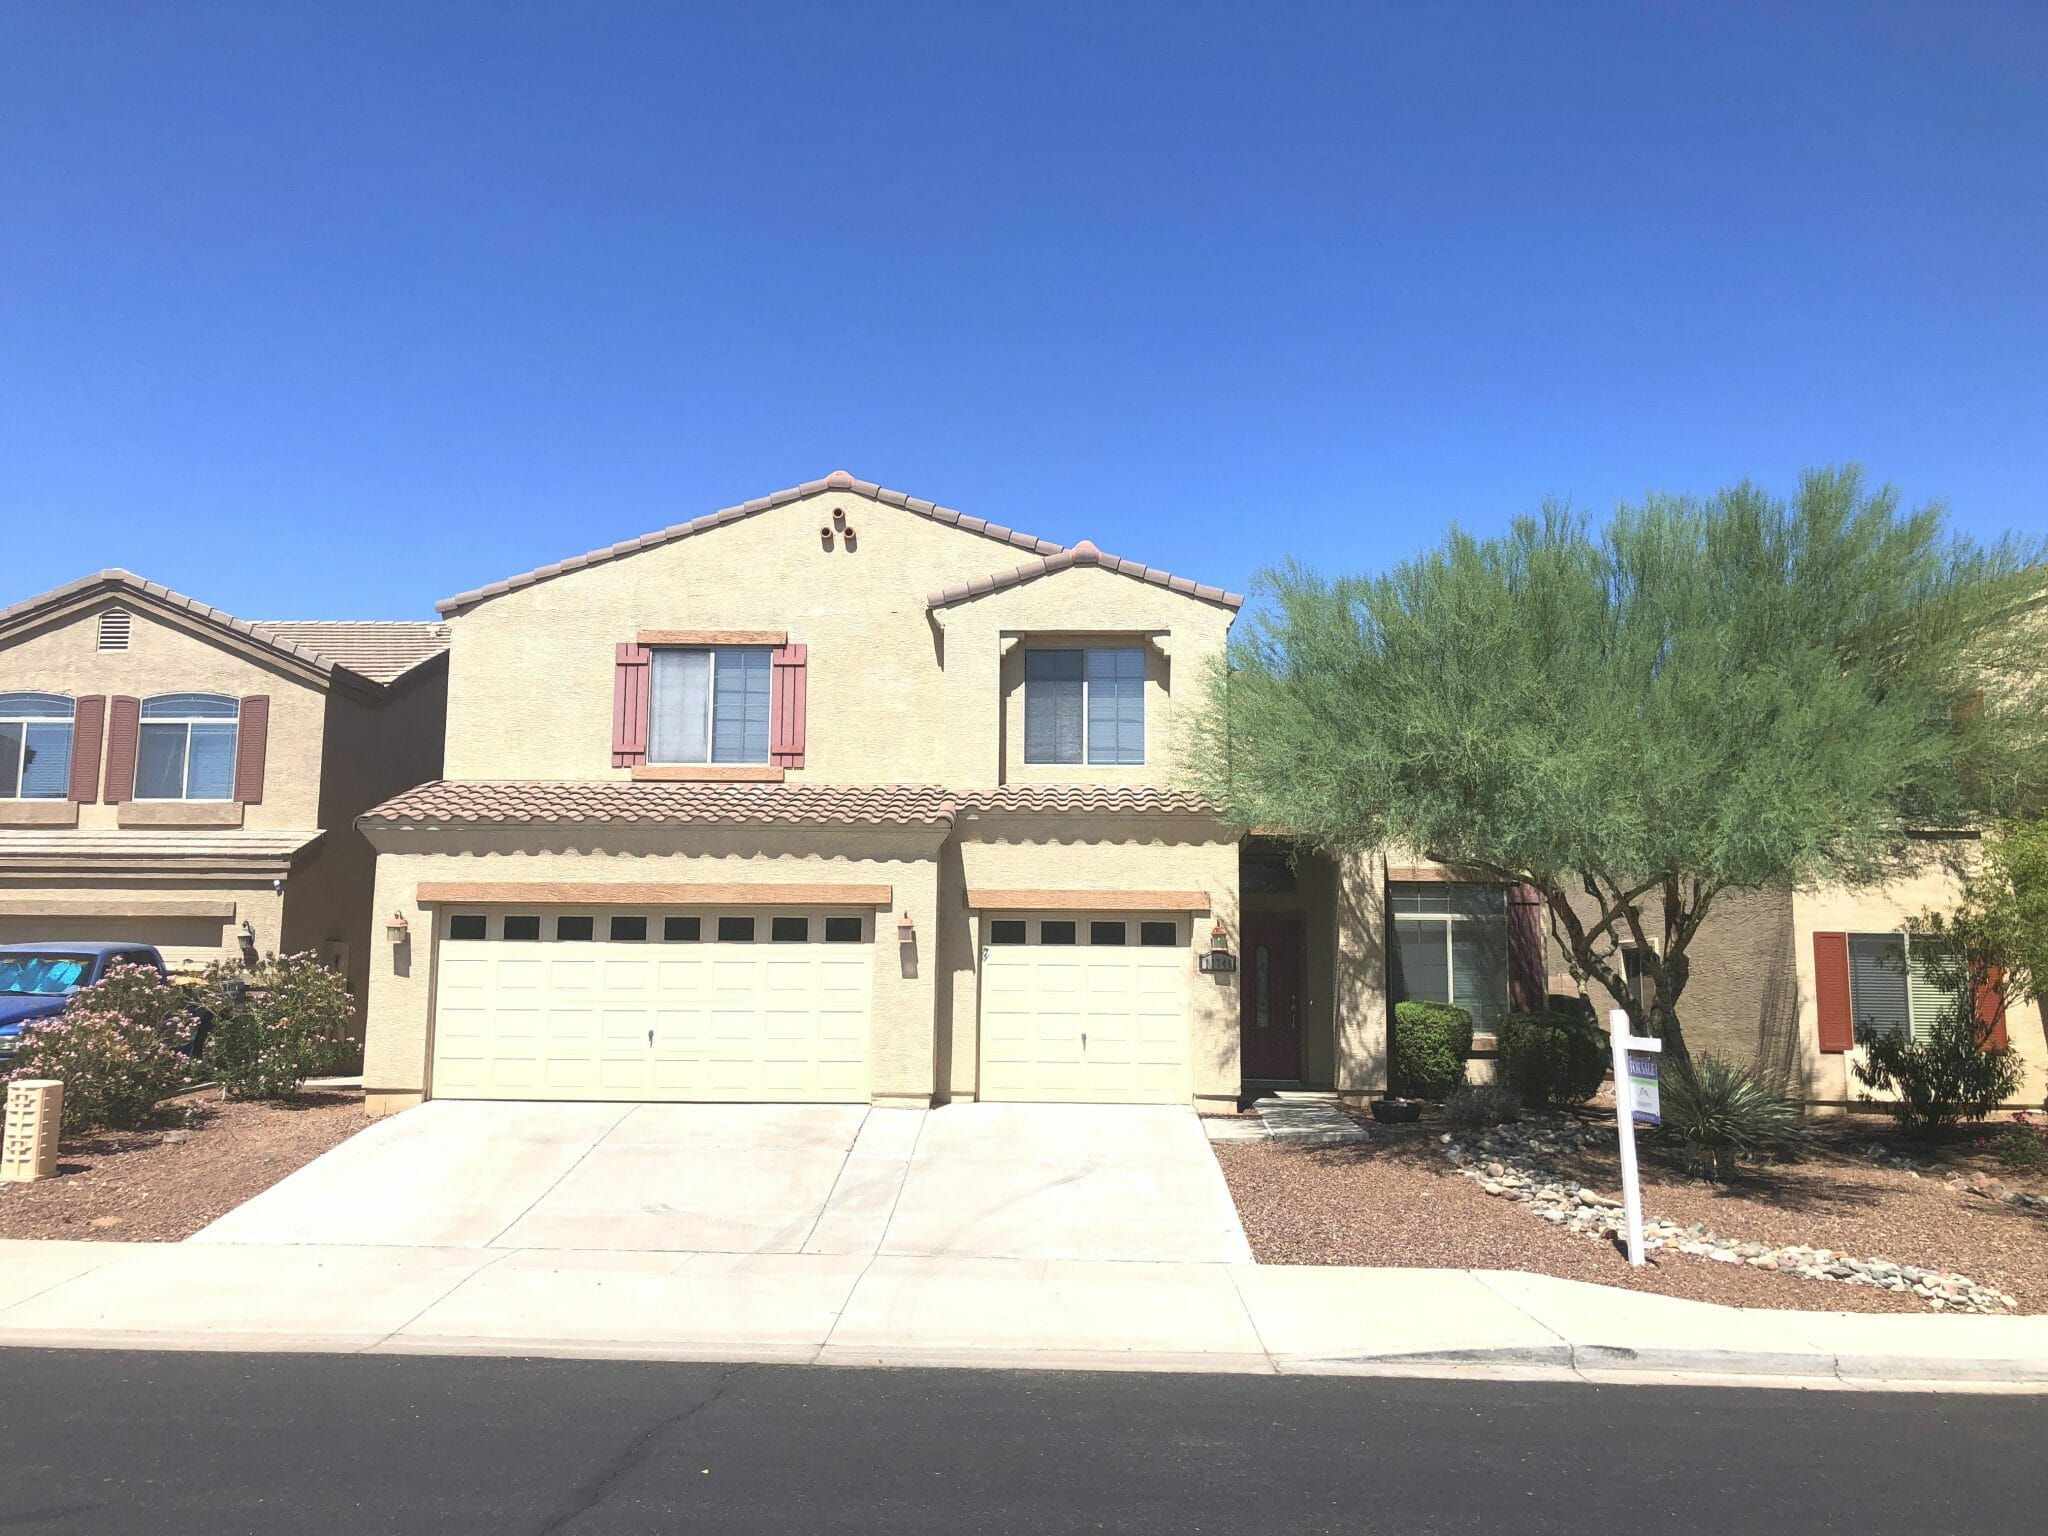 11748 W ELECTRA Lane, Sun City, AZ, 85373